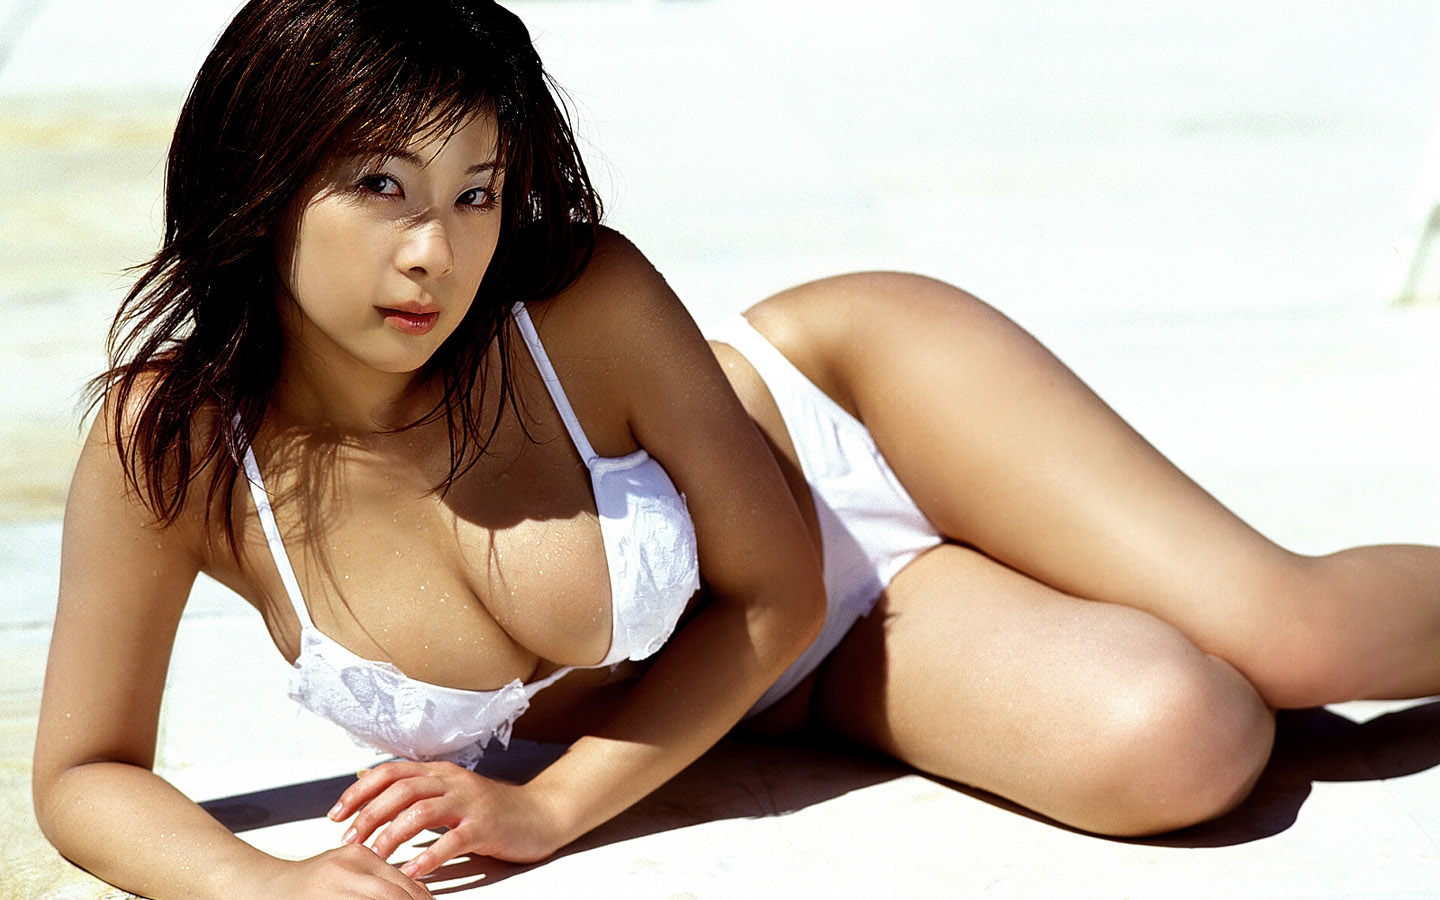 Japanese Women Sex With Swimsuit 19